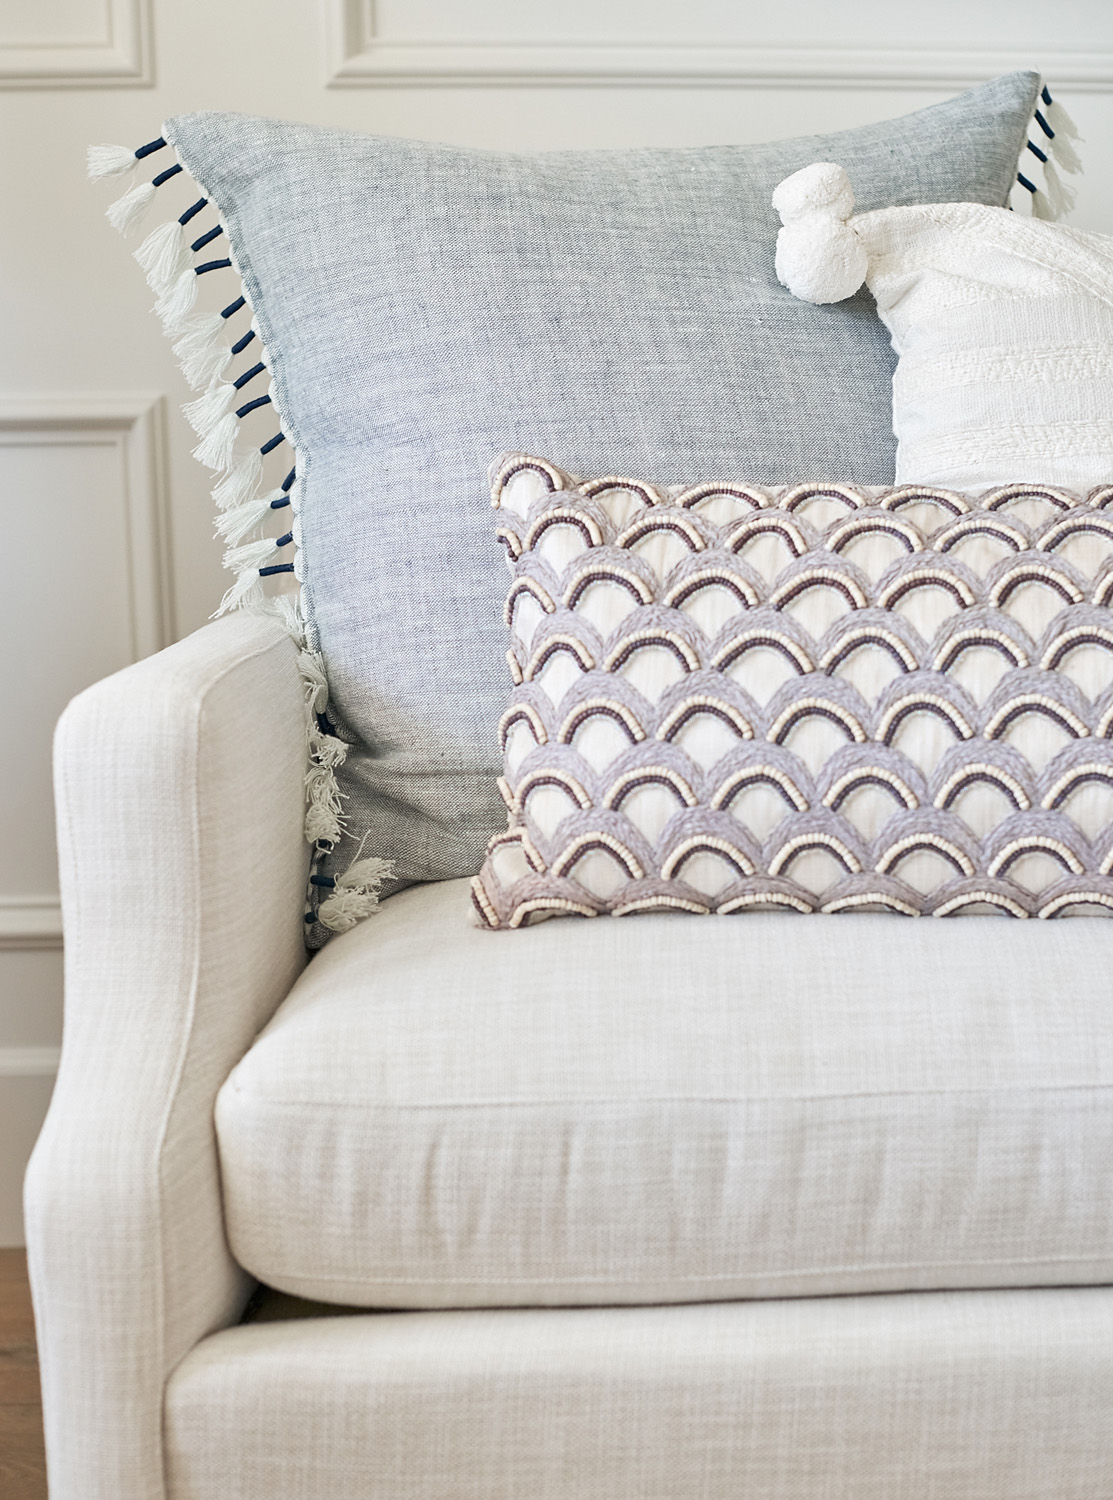 House By The Sea Pillow Details.jpg